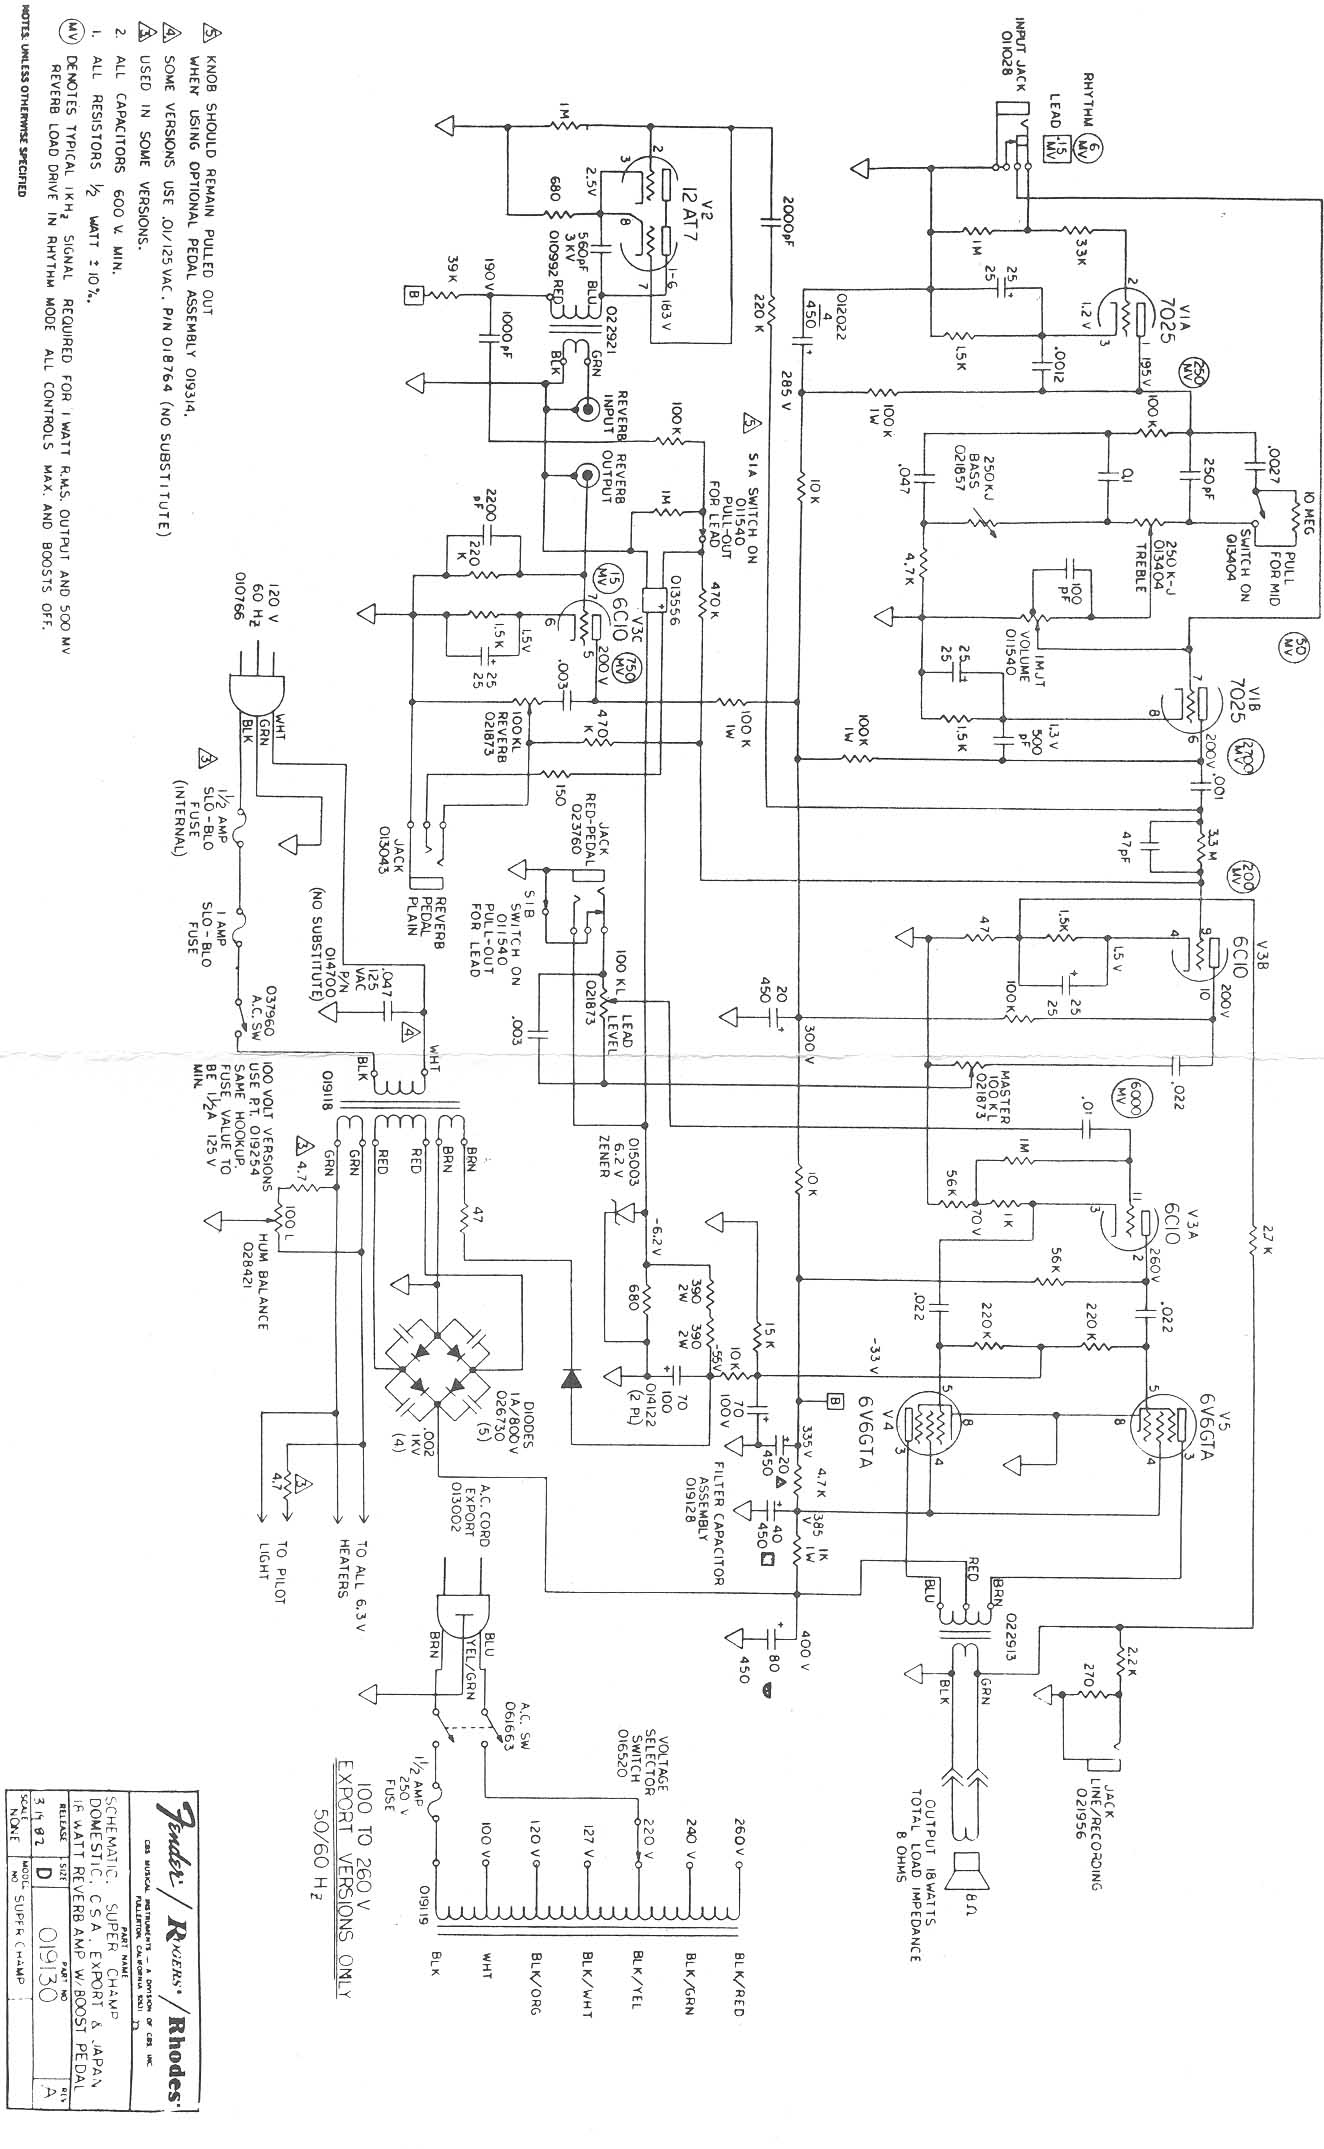 Fender Super Champ Xd Schematic | Wiring Diagram Database